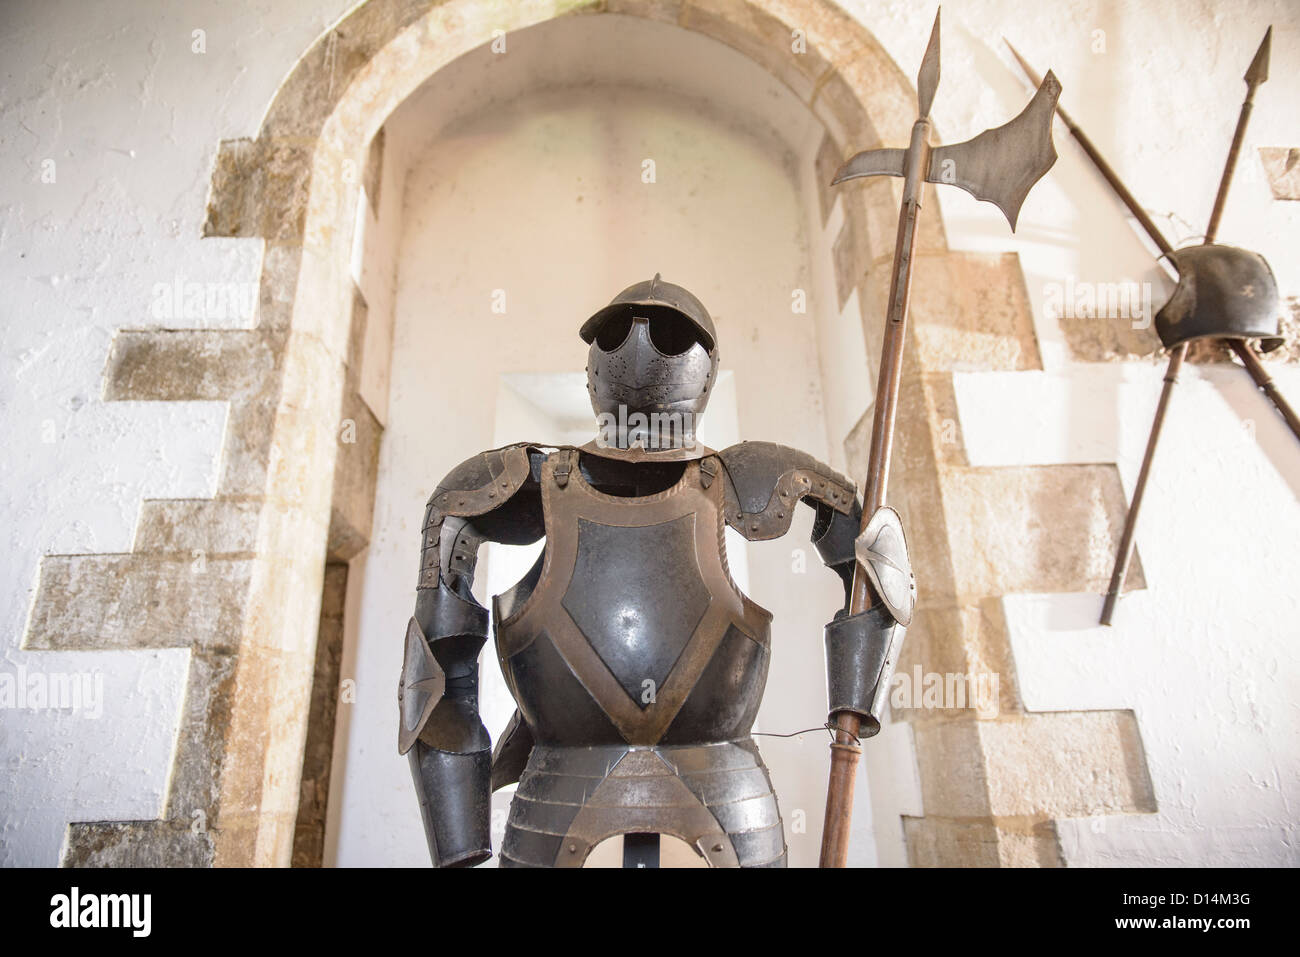 Suit of armor wearing sunglasses - Stock Image